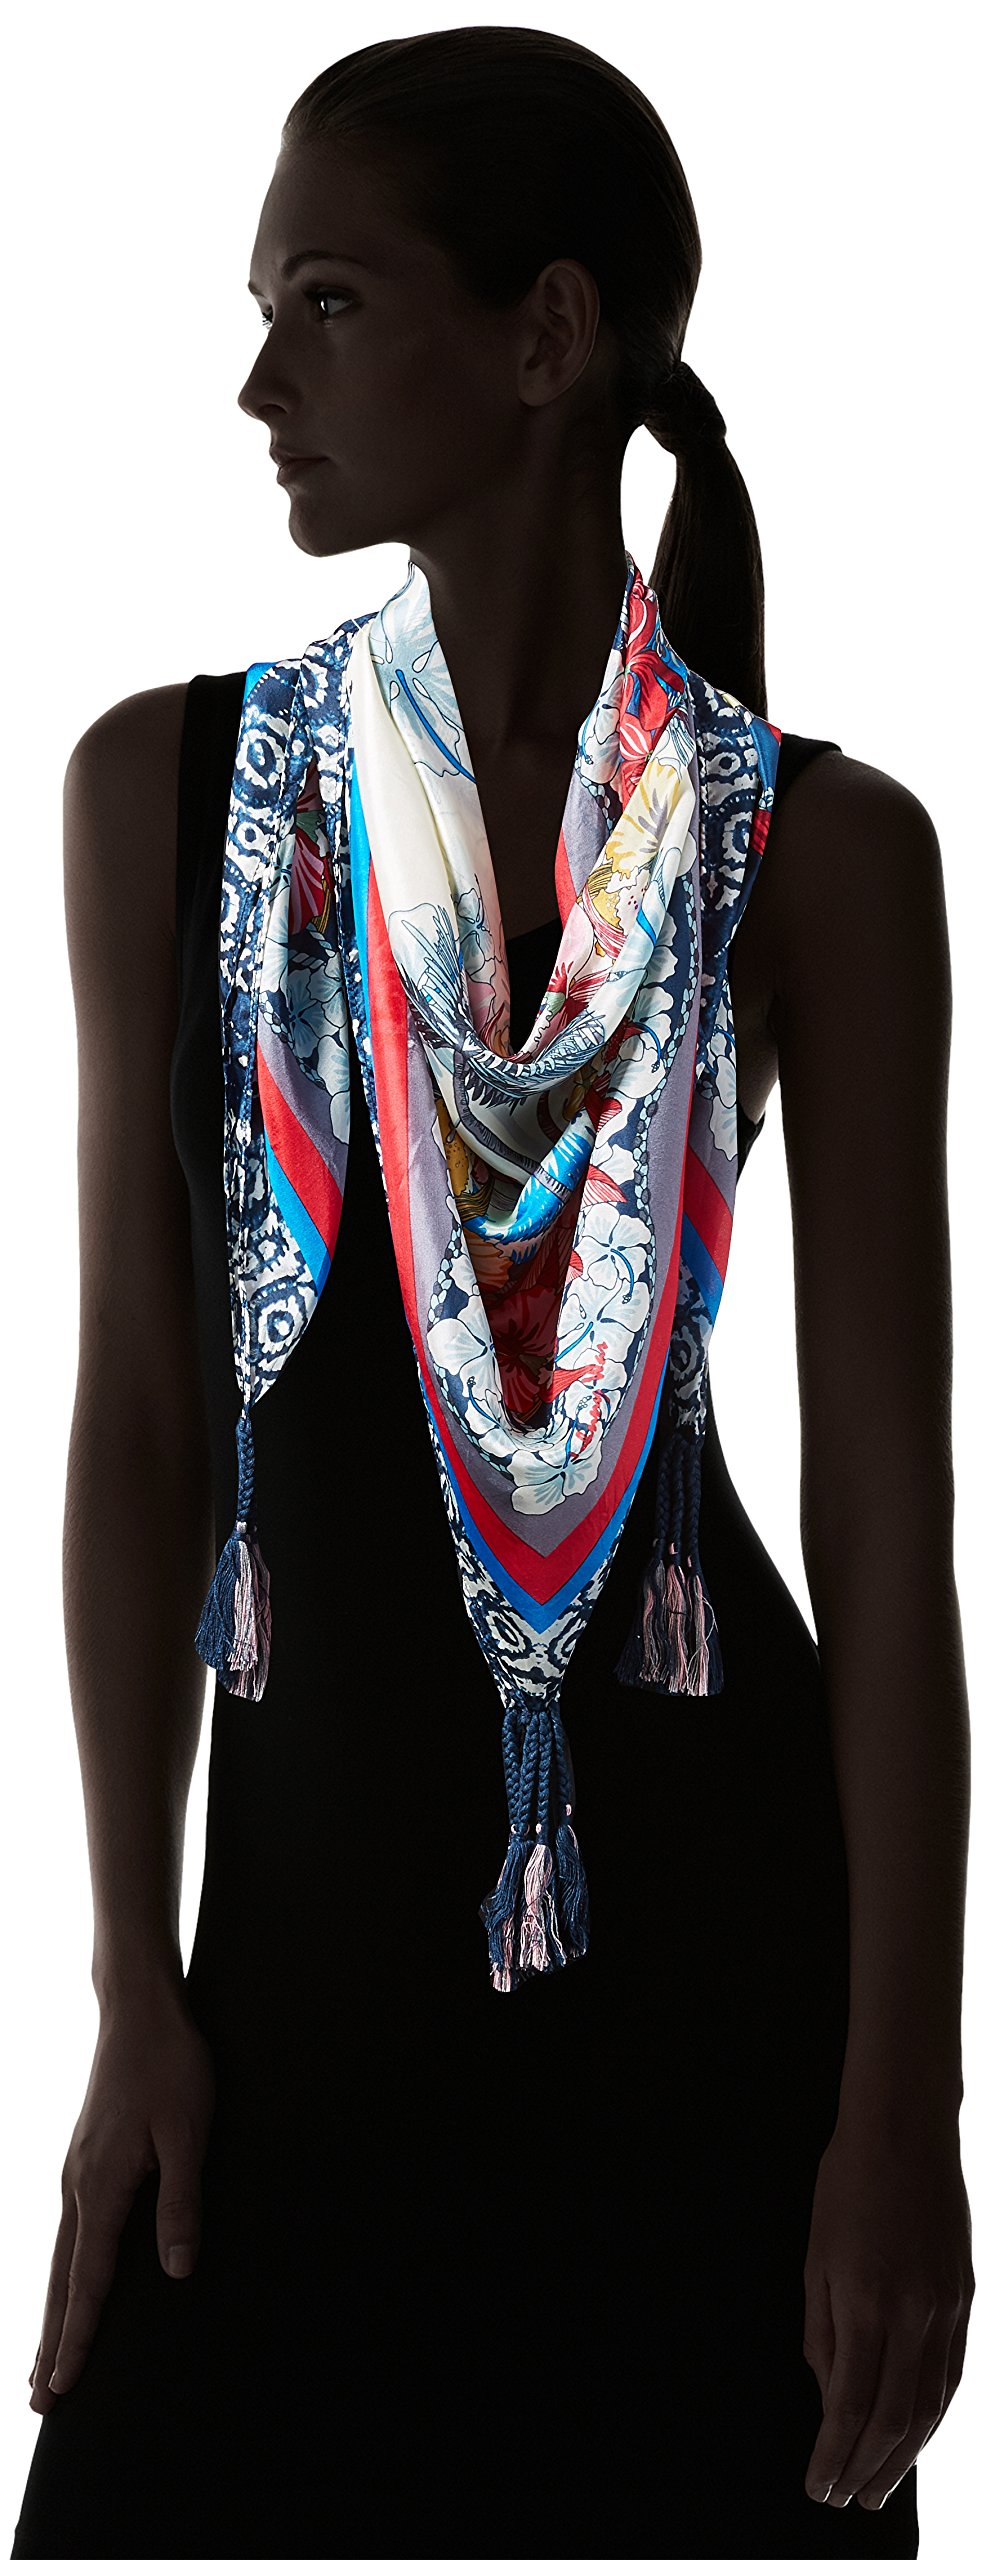 Johnny Was Women's Patterned Silk Square Scarf with Tassels, Vacation Multi O/S by Johnny Was (Image #3)